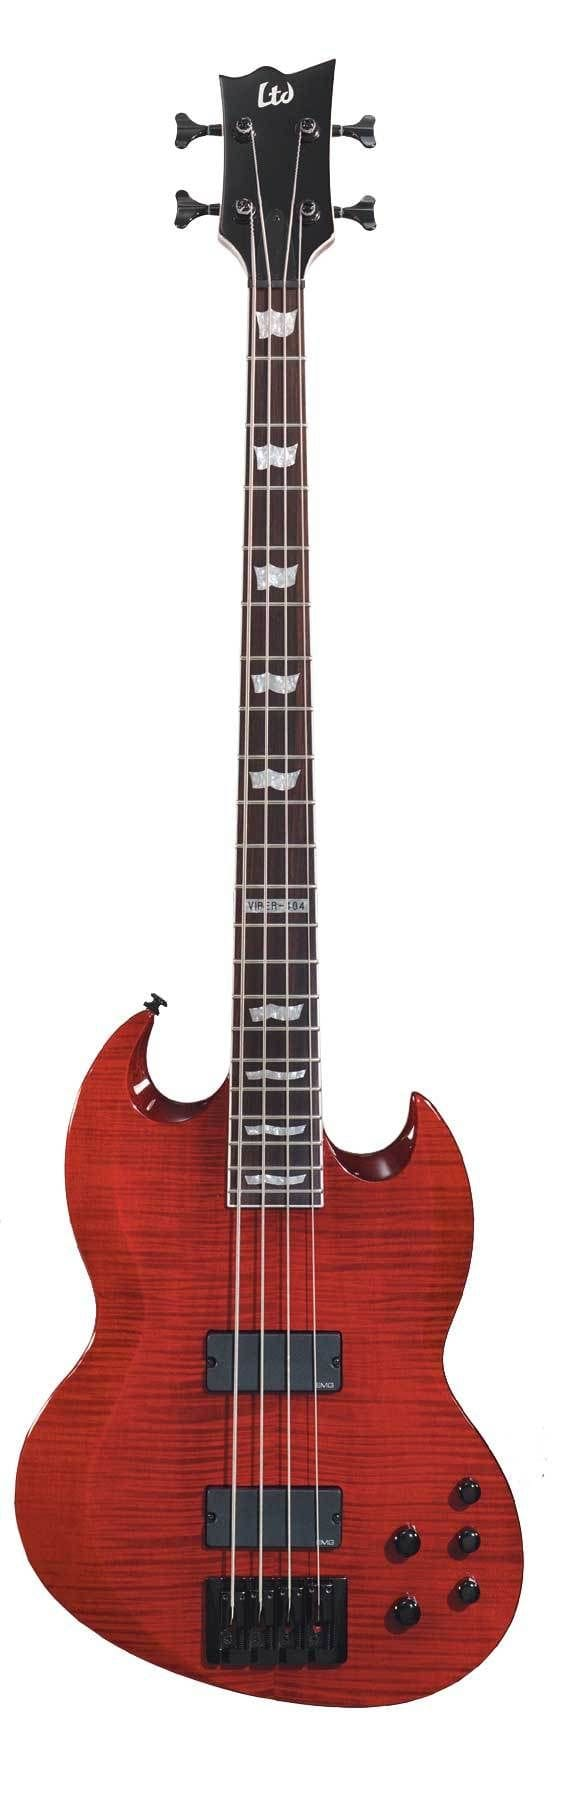 LTD VP-404 STBC VIPER BASS FLAME TOP